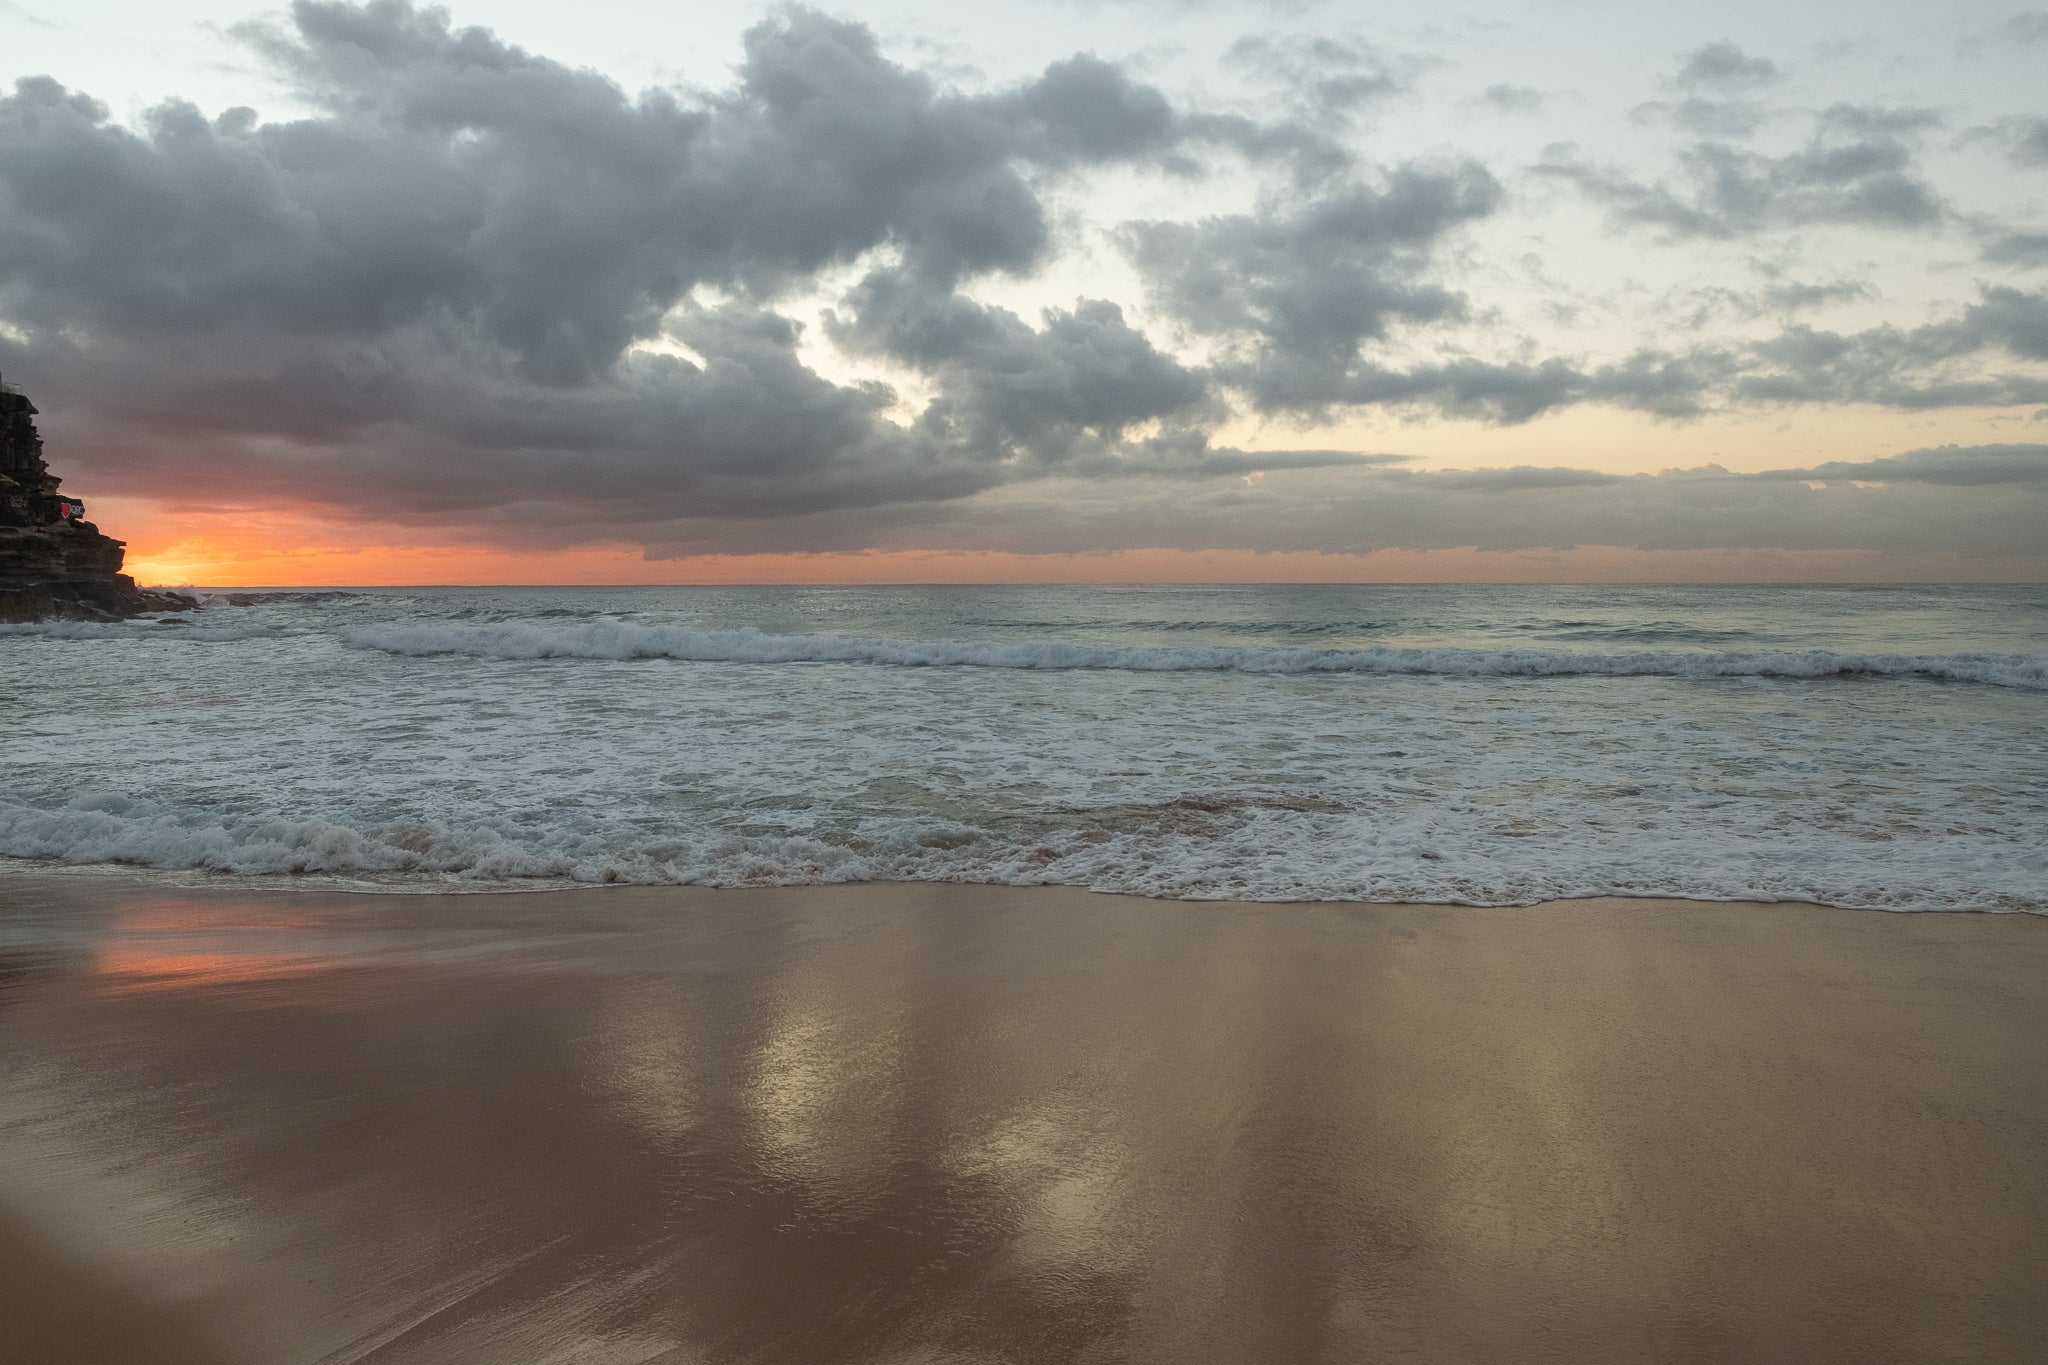 Sunrise photo from the 30th April 2019 at Queenscliff beach in Sydney